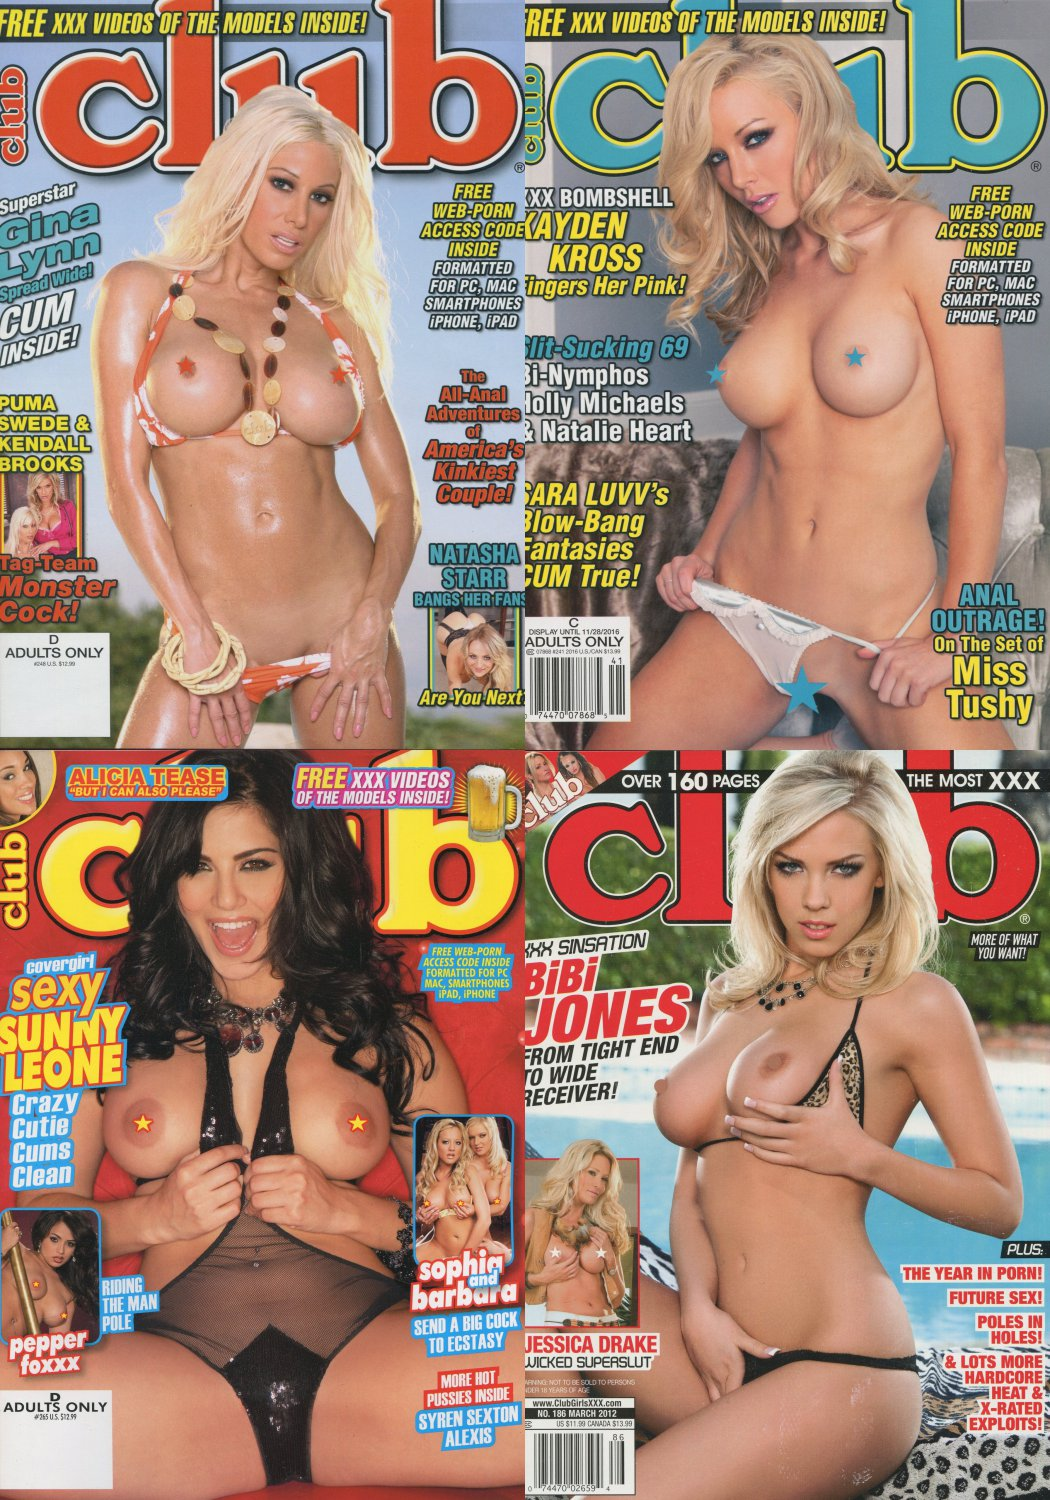 CLUB LOT#1210 Value Pack - 4 Mags + 4 Hardcore DVD's